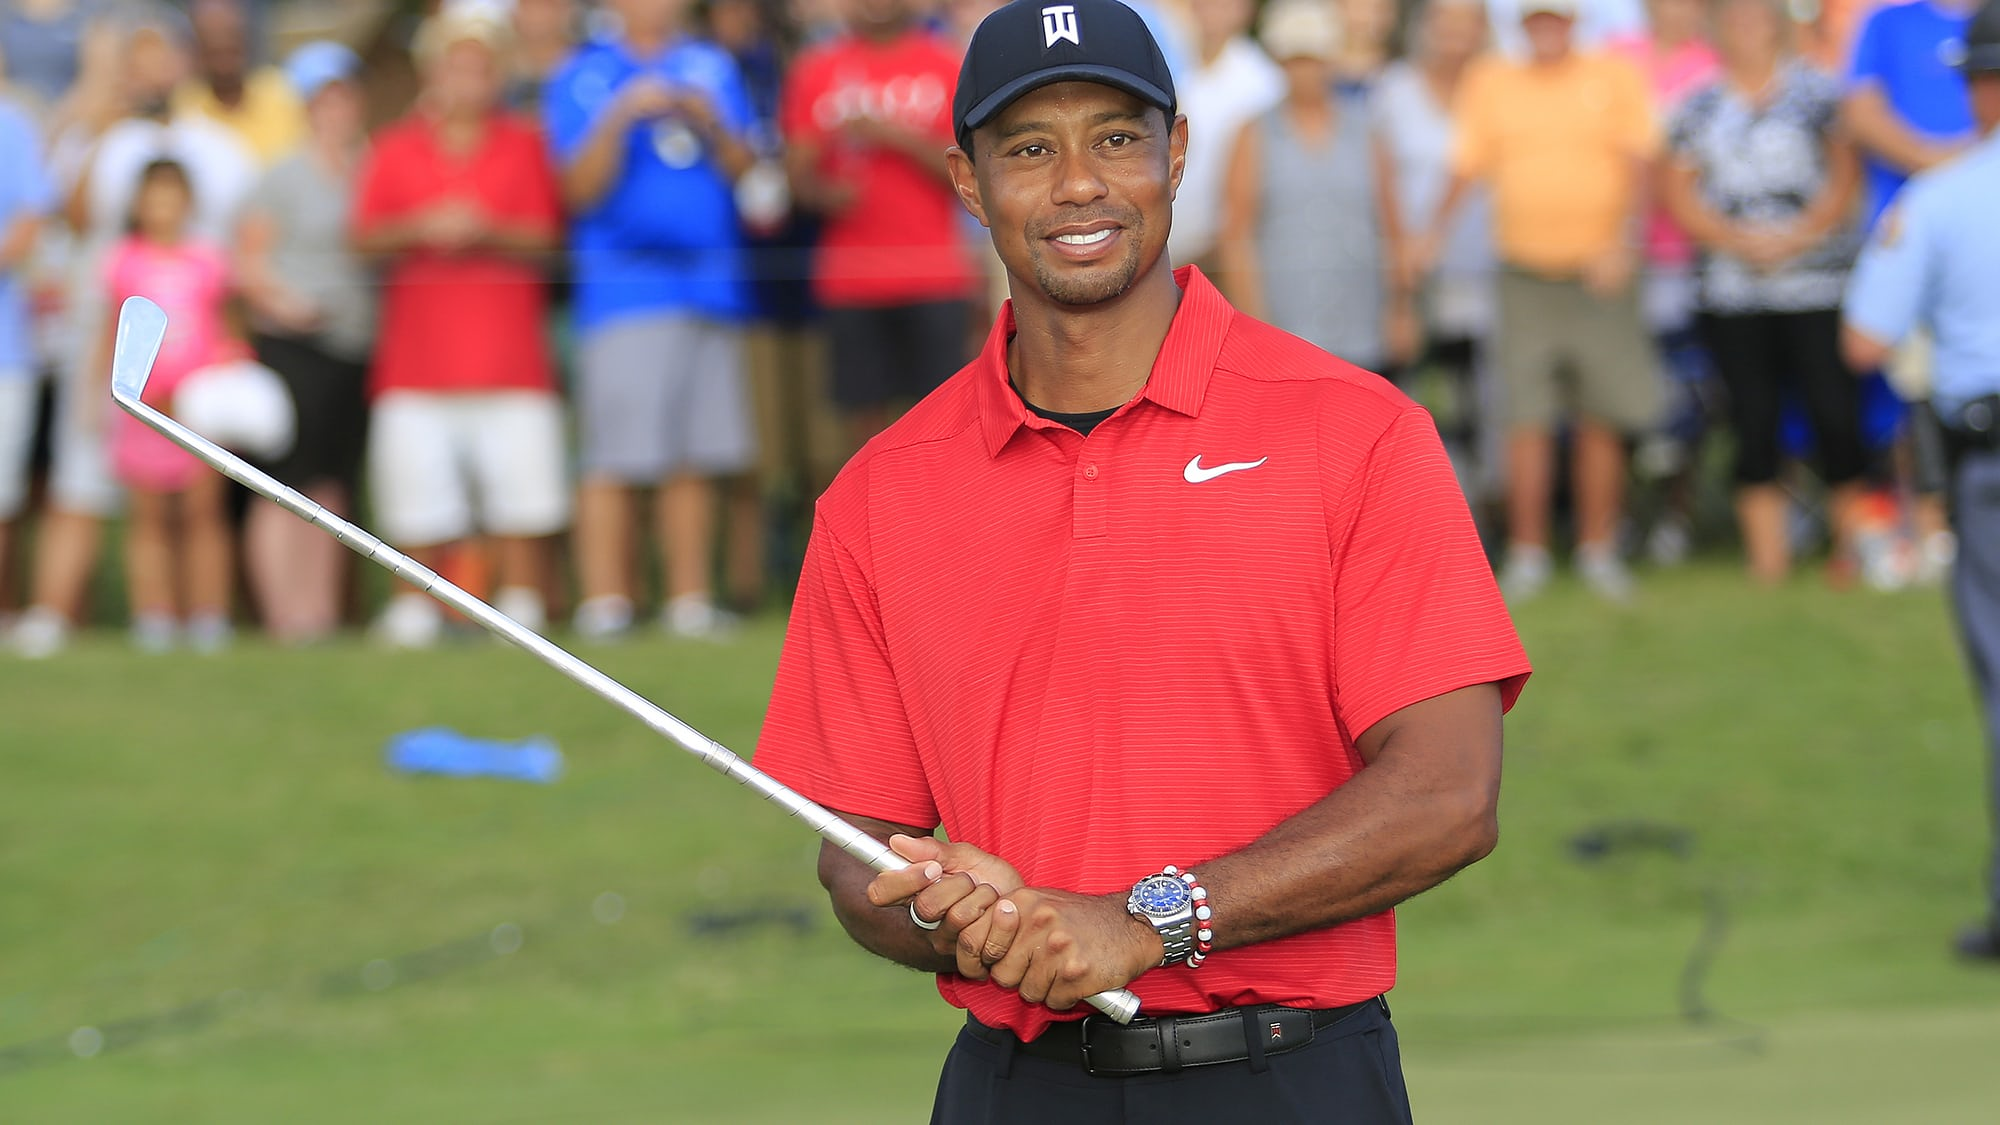 Watch Spotting: Tiger Woods Wins The 2018 PGA Tour Championship Wearing a Rolex Deepsea tiger hodinkee